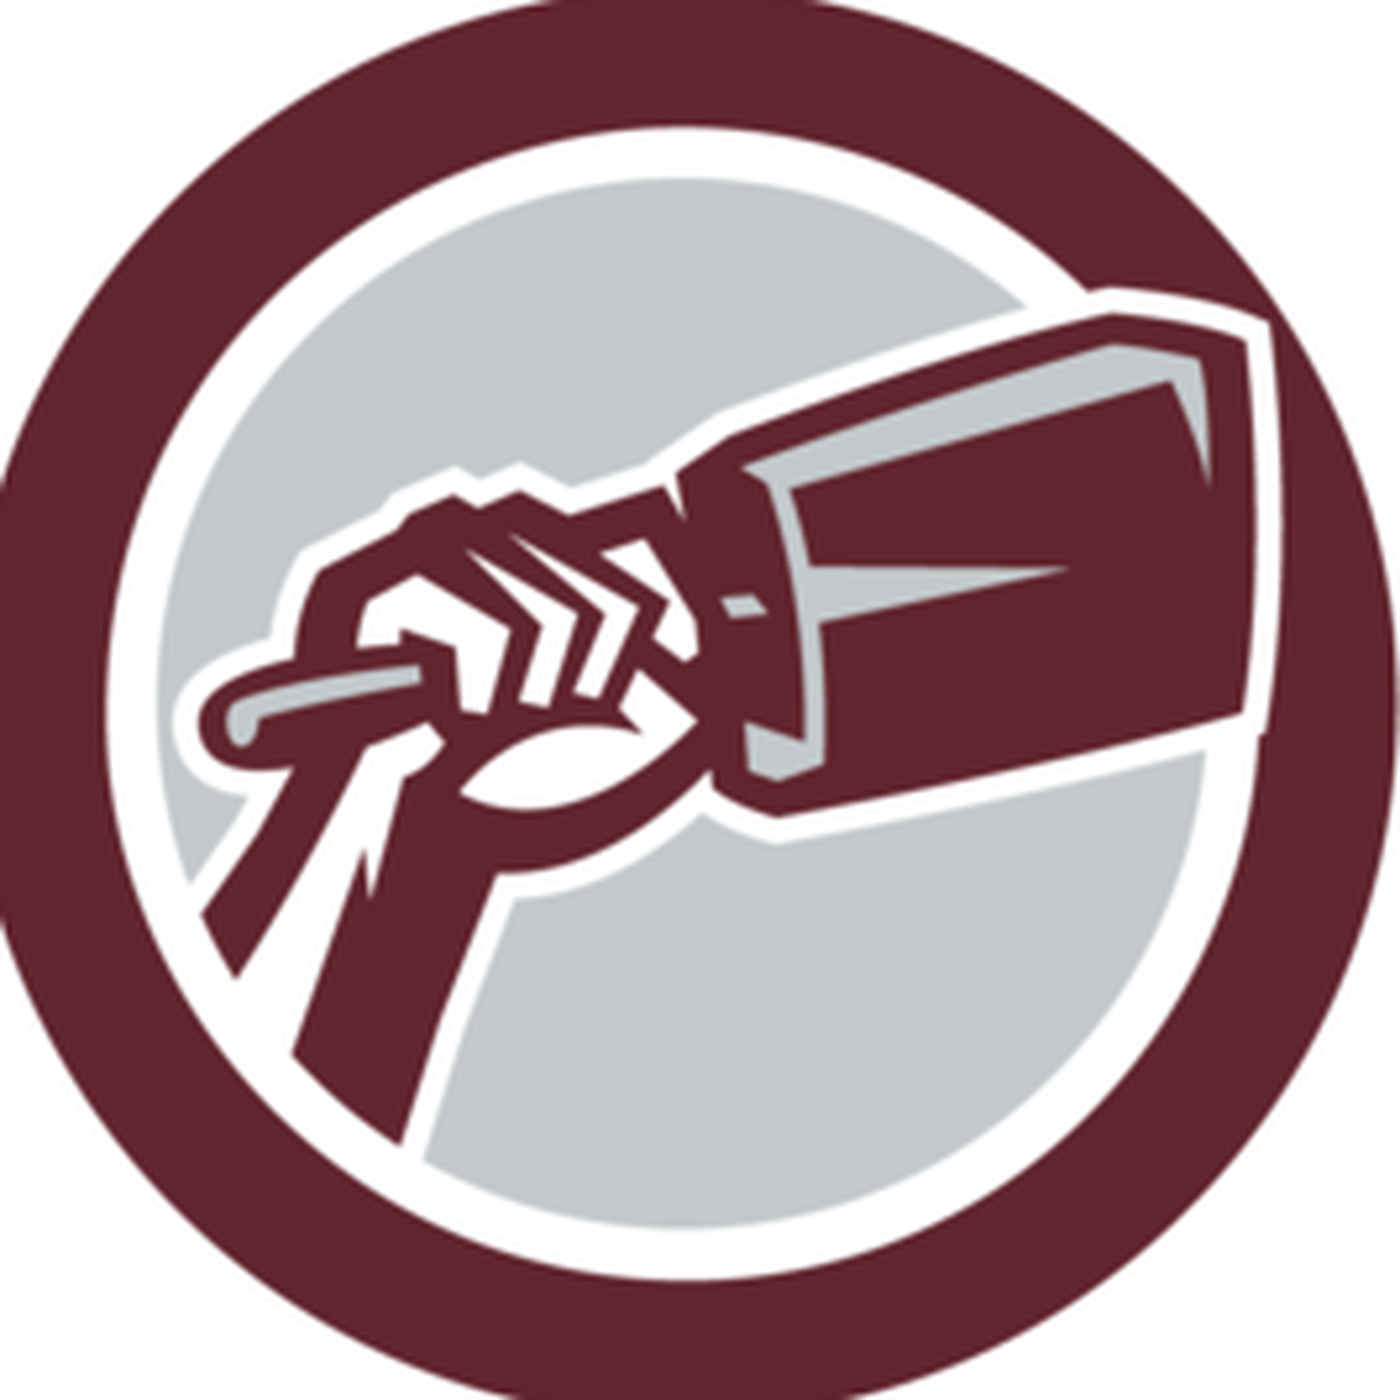 Msu cowbell clipart free library Cheering for Mississippi State Basketball | FAQ - For Whom ... free library